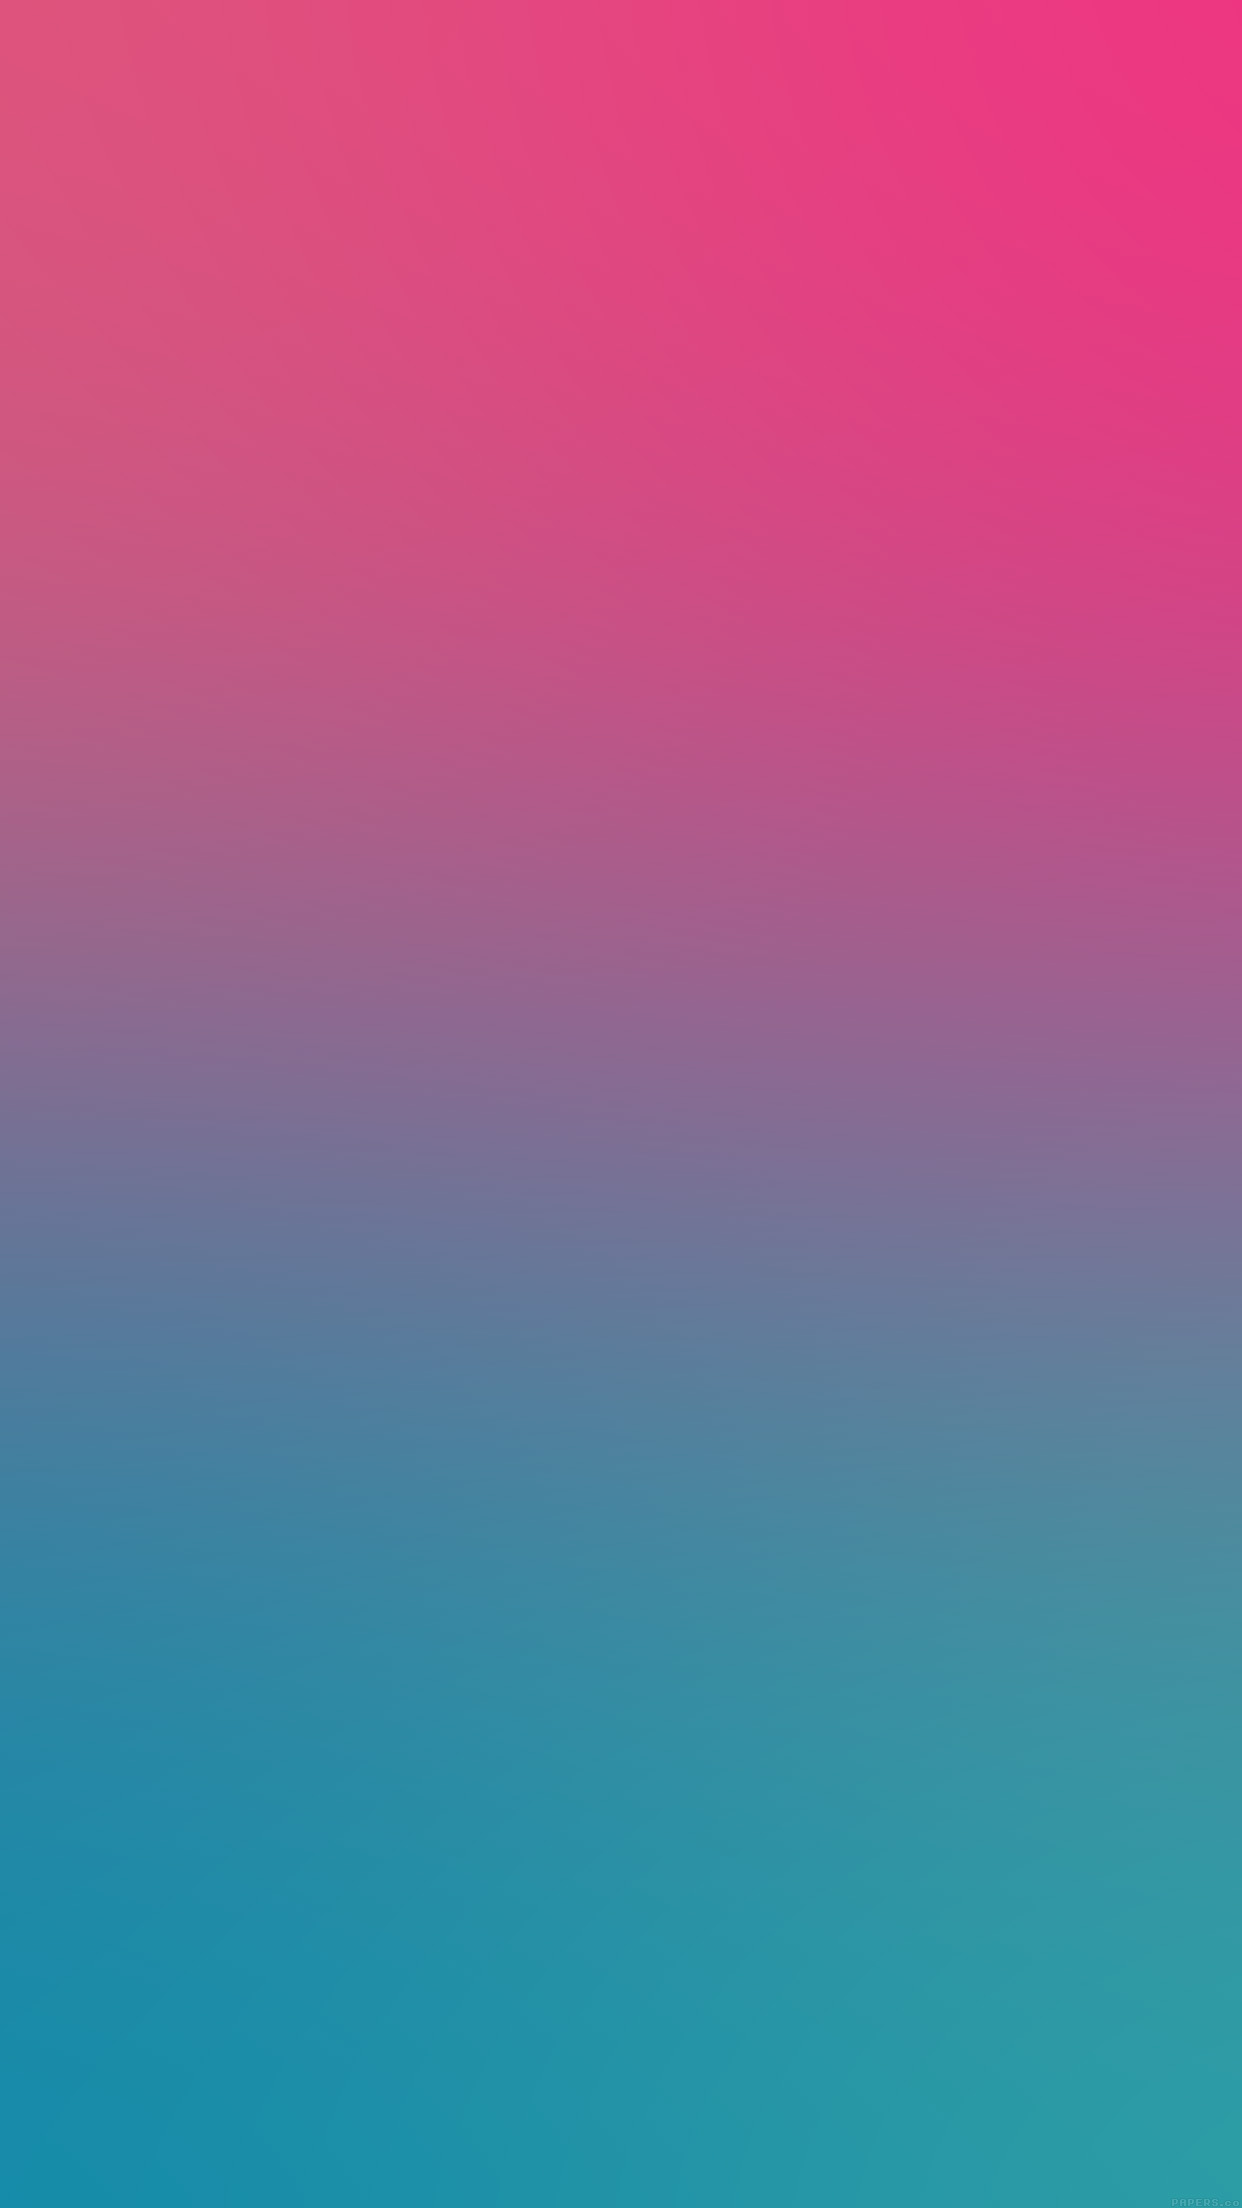 Fall Ombre Wallpaper For Iphone X Iphonexpapers